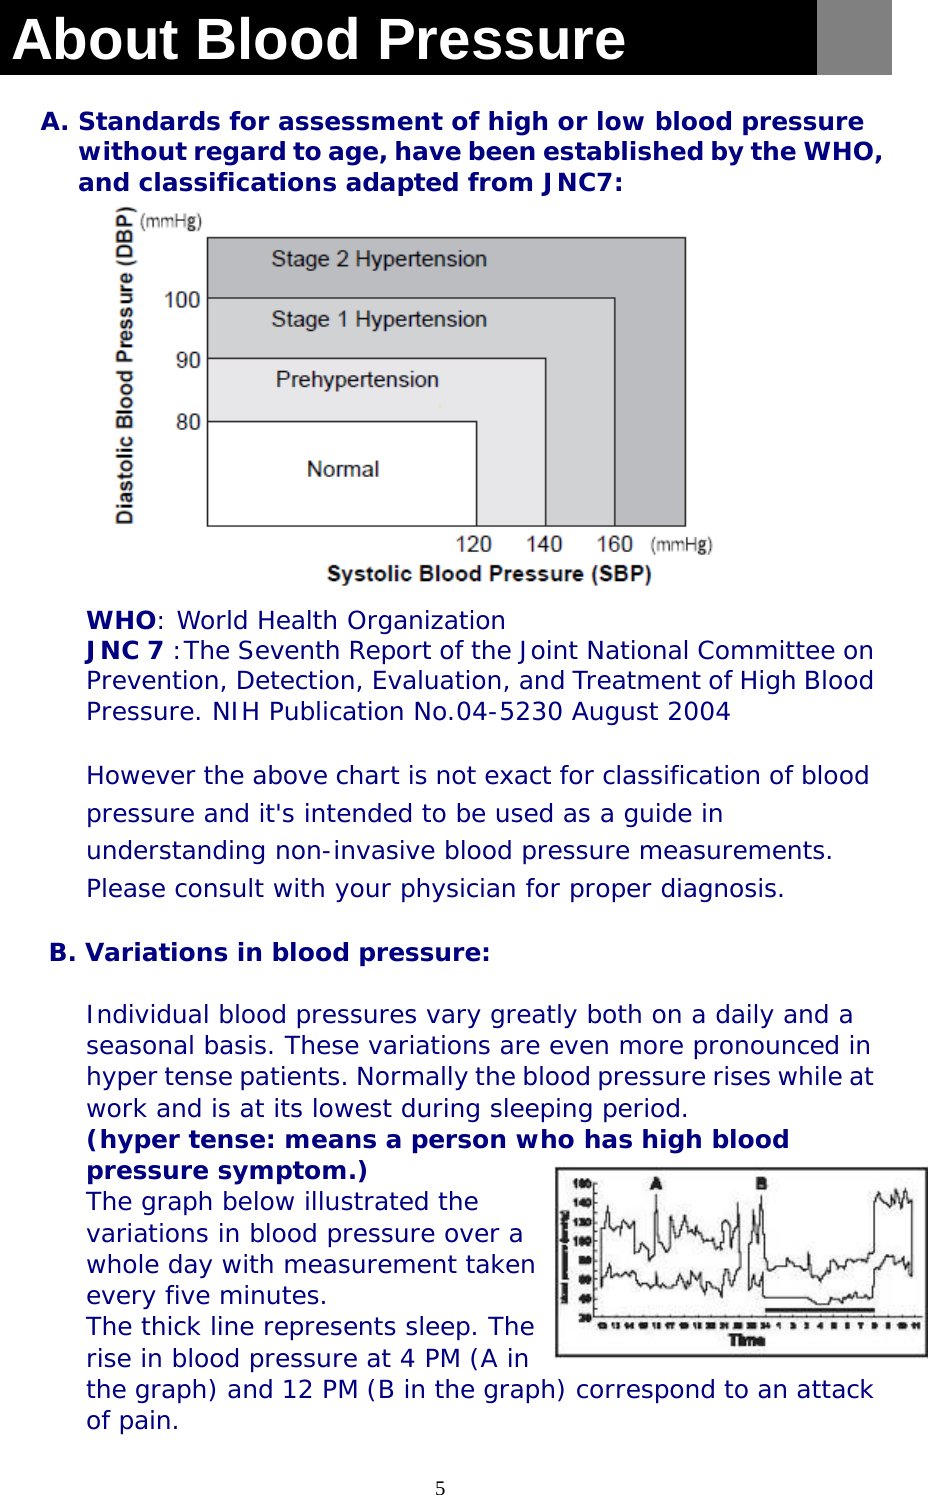 Health and life hnl15va automatic wrist blood pressure monitor page 5 of health and life hnl15va automatic wrist blood pressure monitor user manual automatic nvjuhfo Images